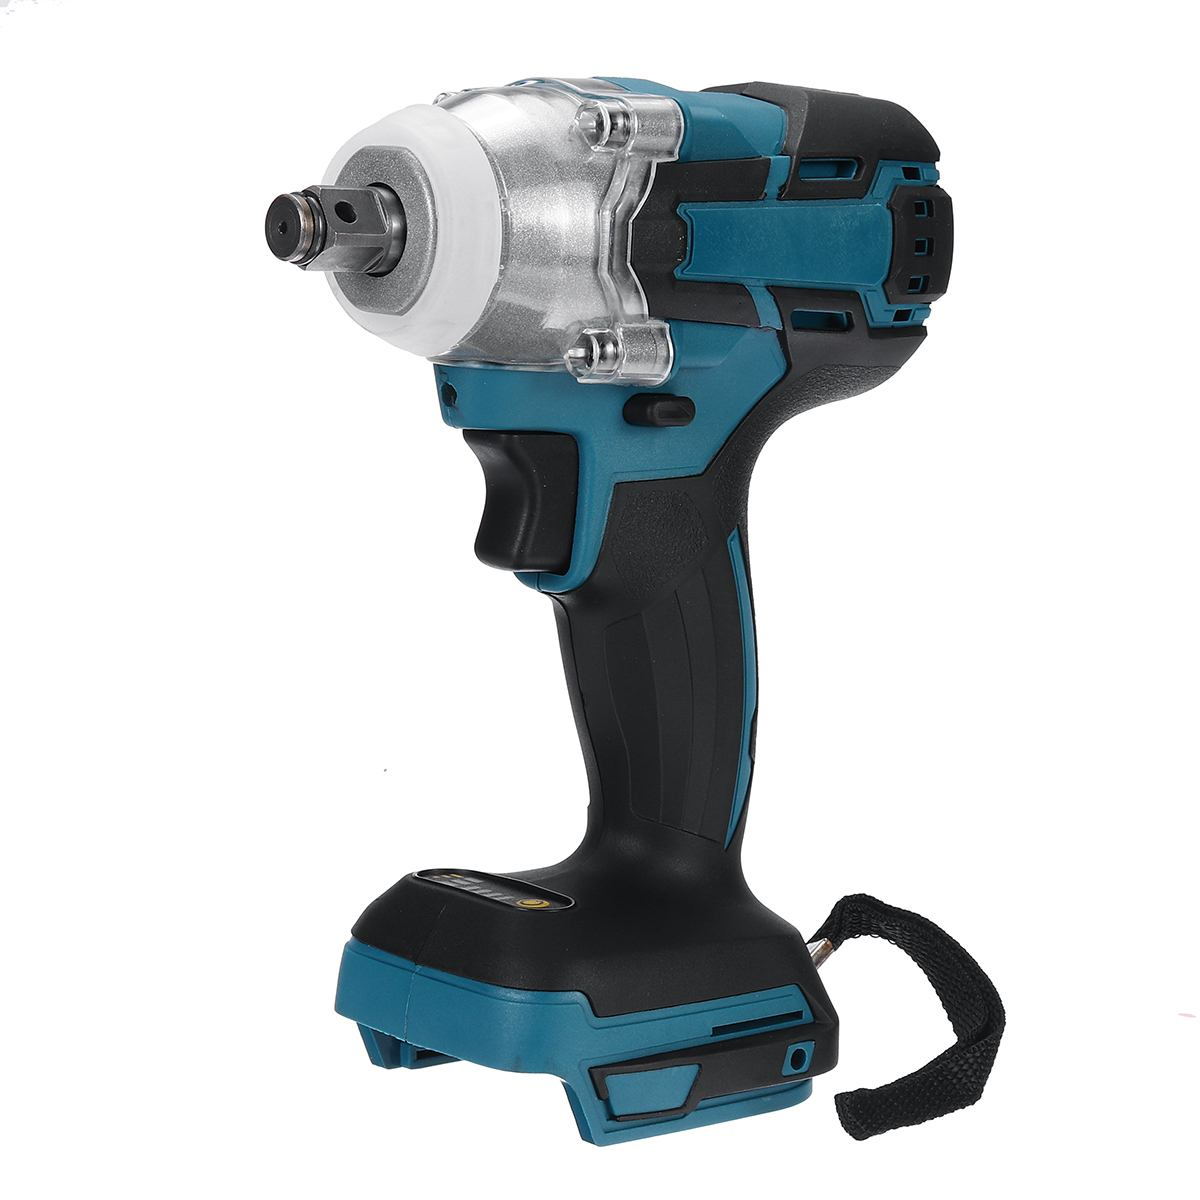 18V 280Nm Cordless Impact Wrench Driver Brushless Motor 1/2